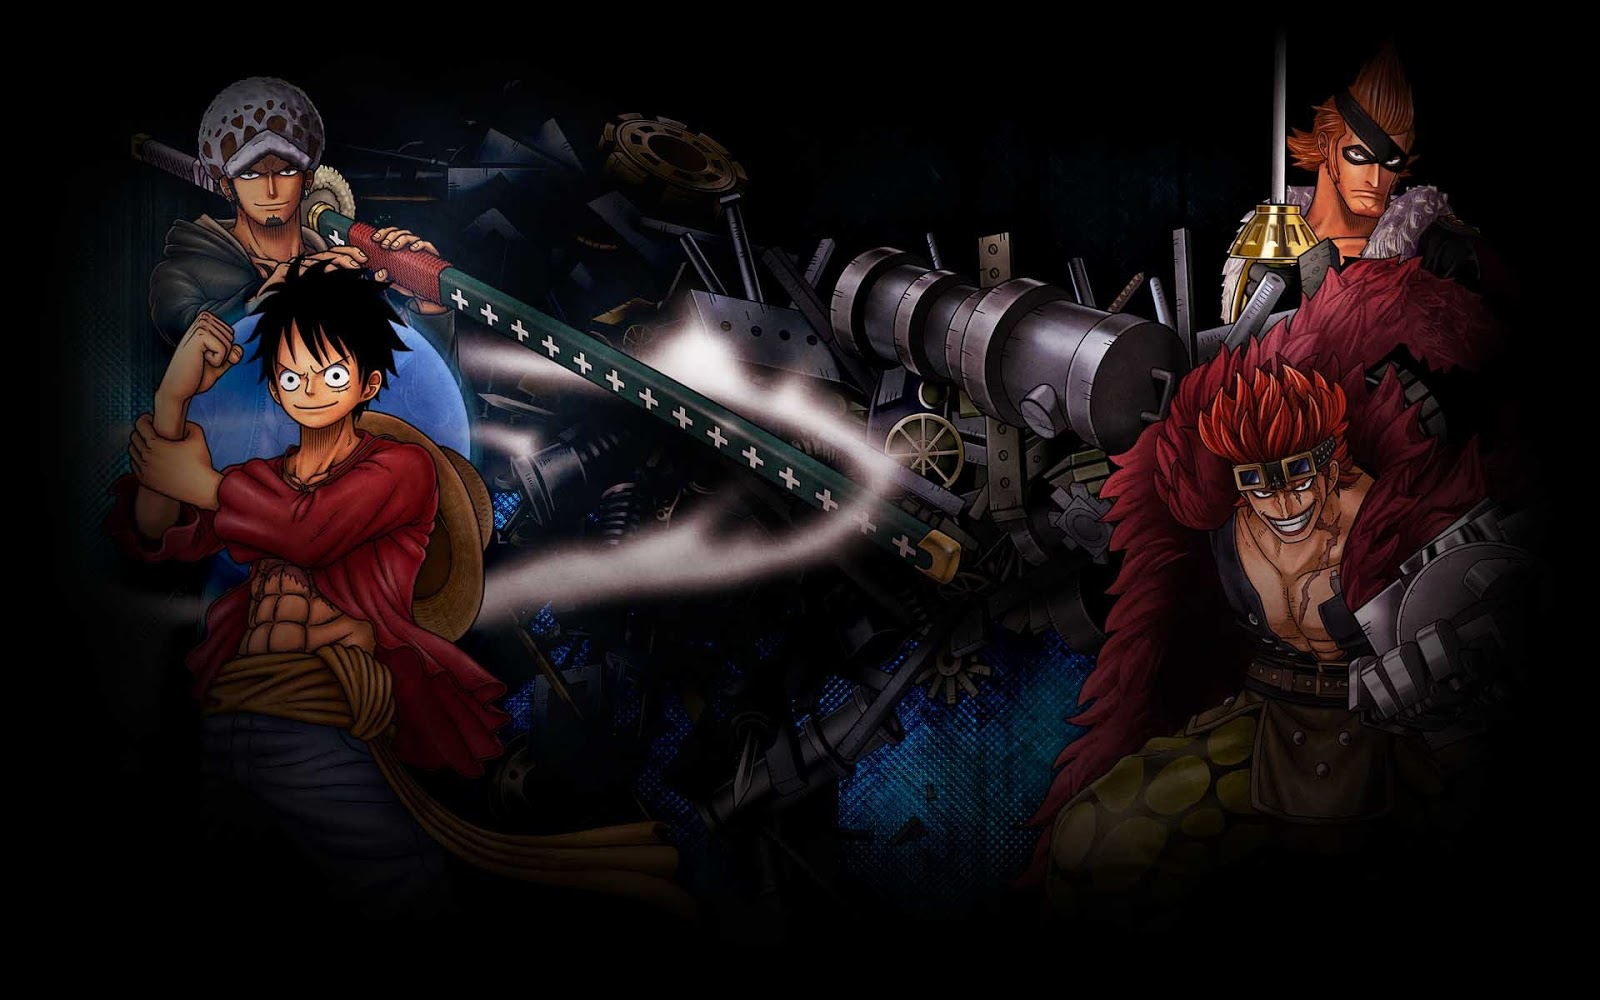 One Piece Hd Wallpaper Pack Manga Council